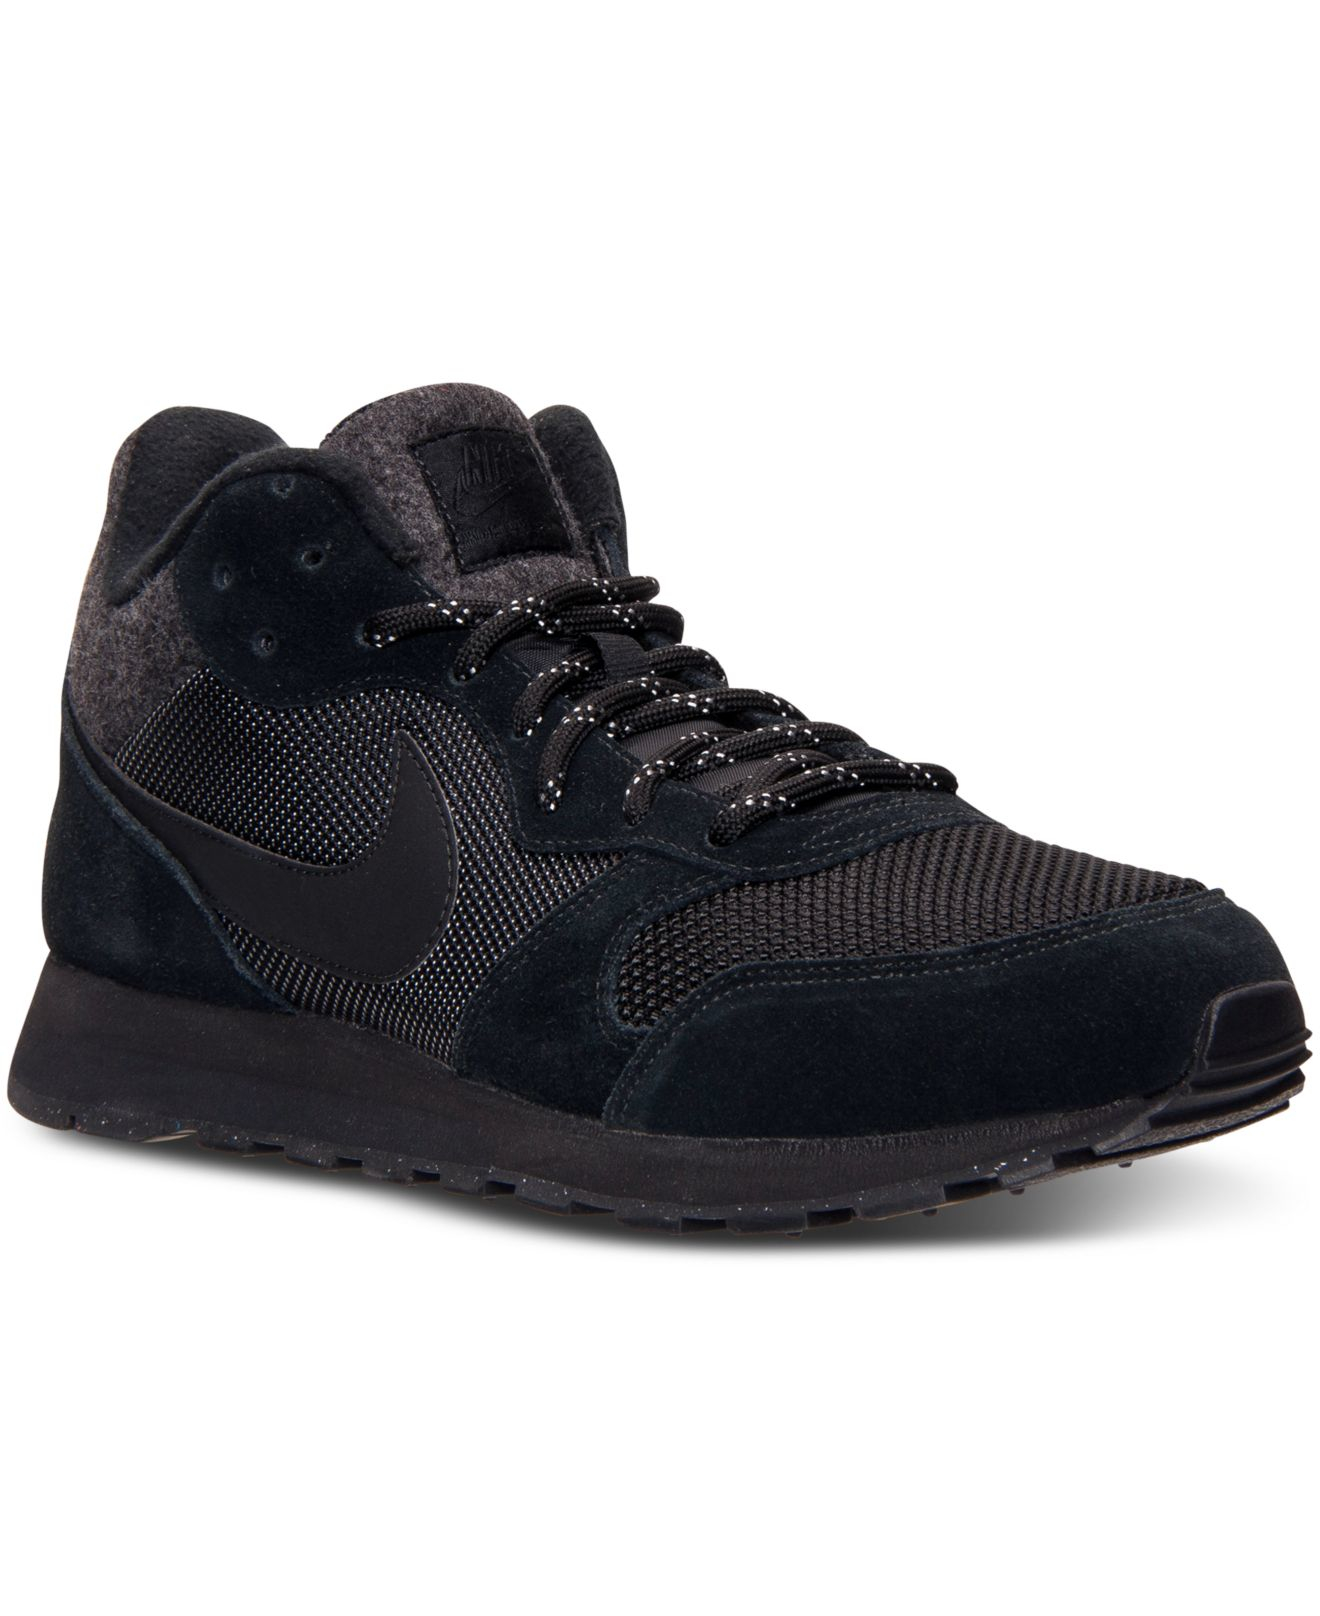 van chevaux vendre - Nike Men's Md Runner 2 Mid Casual Sneakers From Finish Line in ...